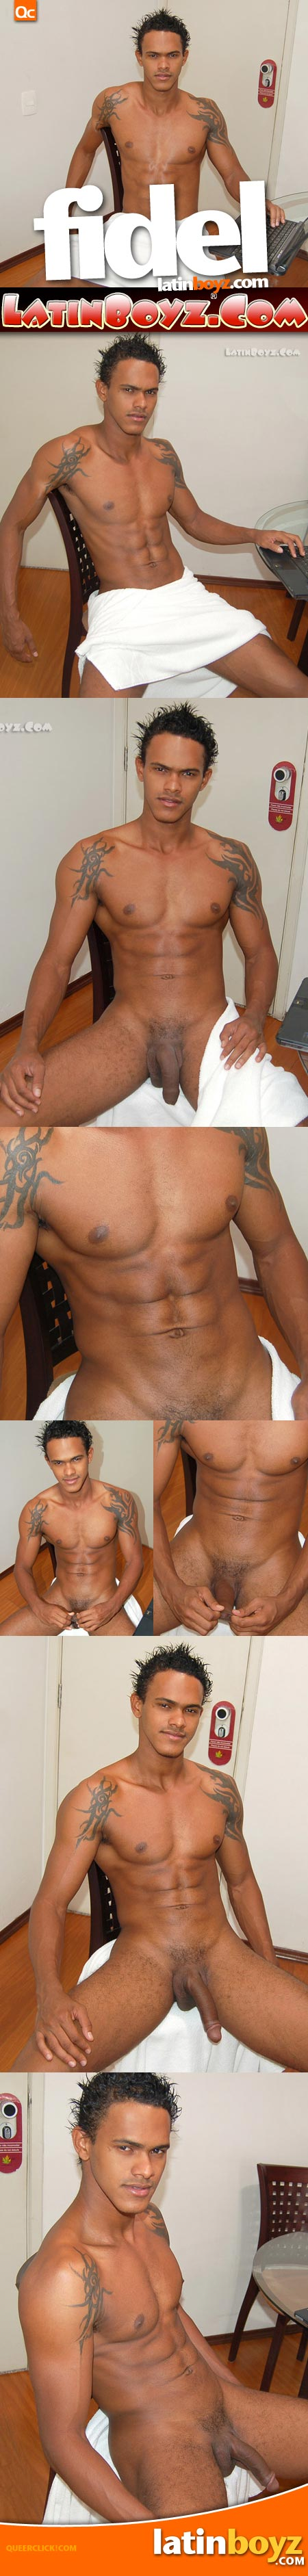 Fidel at LatinBoyz.com